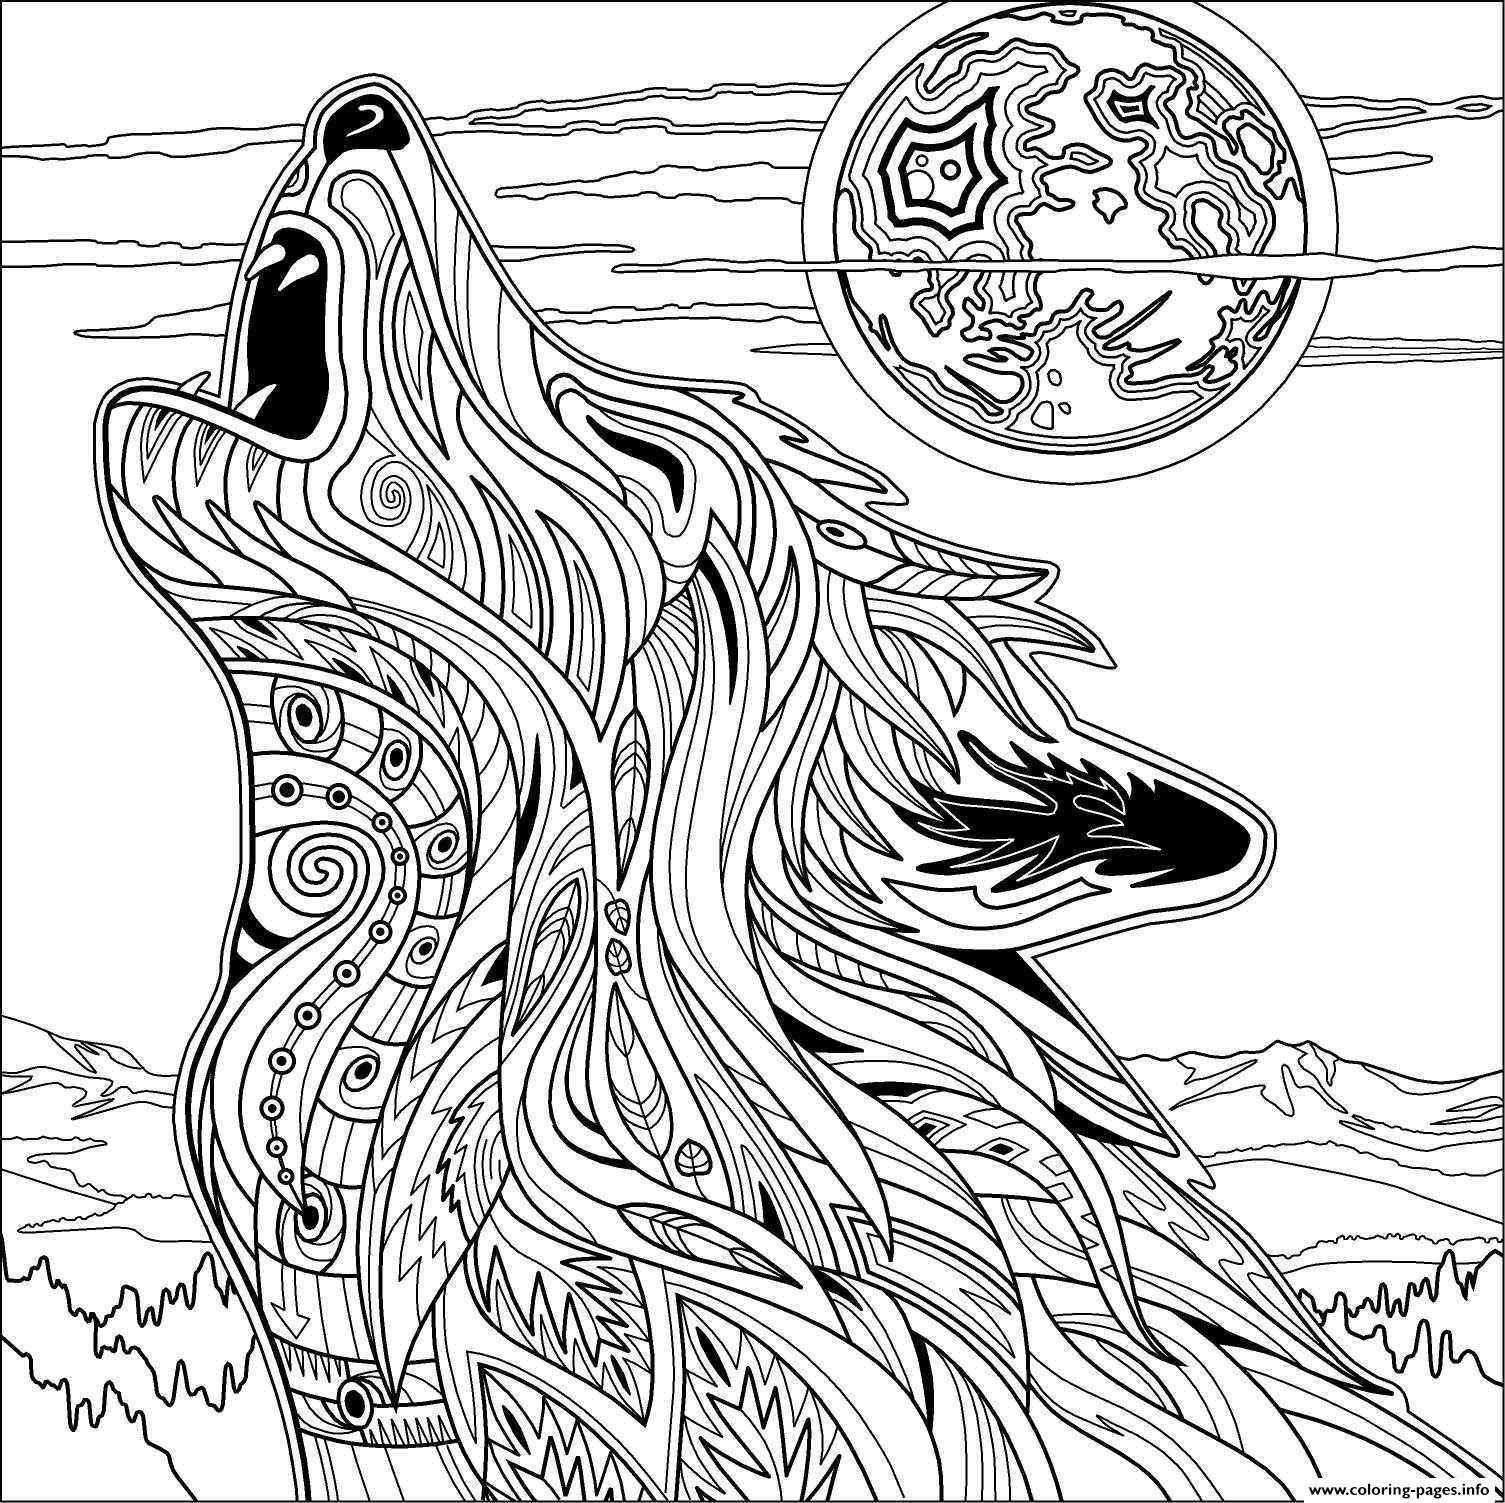 werewolf coloring page werewolf coloring pages for adults part 5 free coloring werewolf page